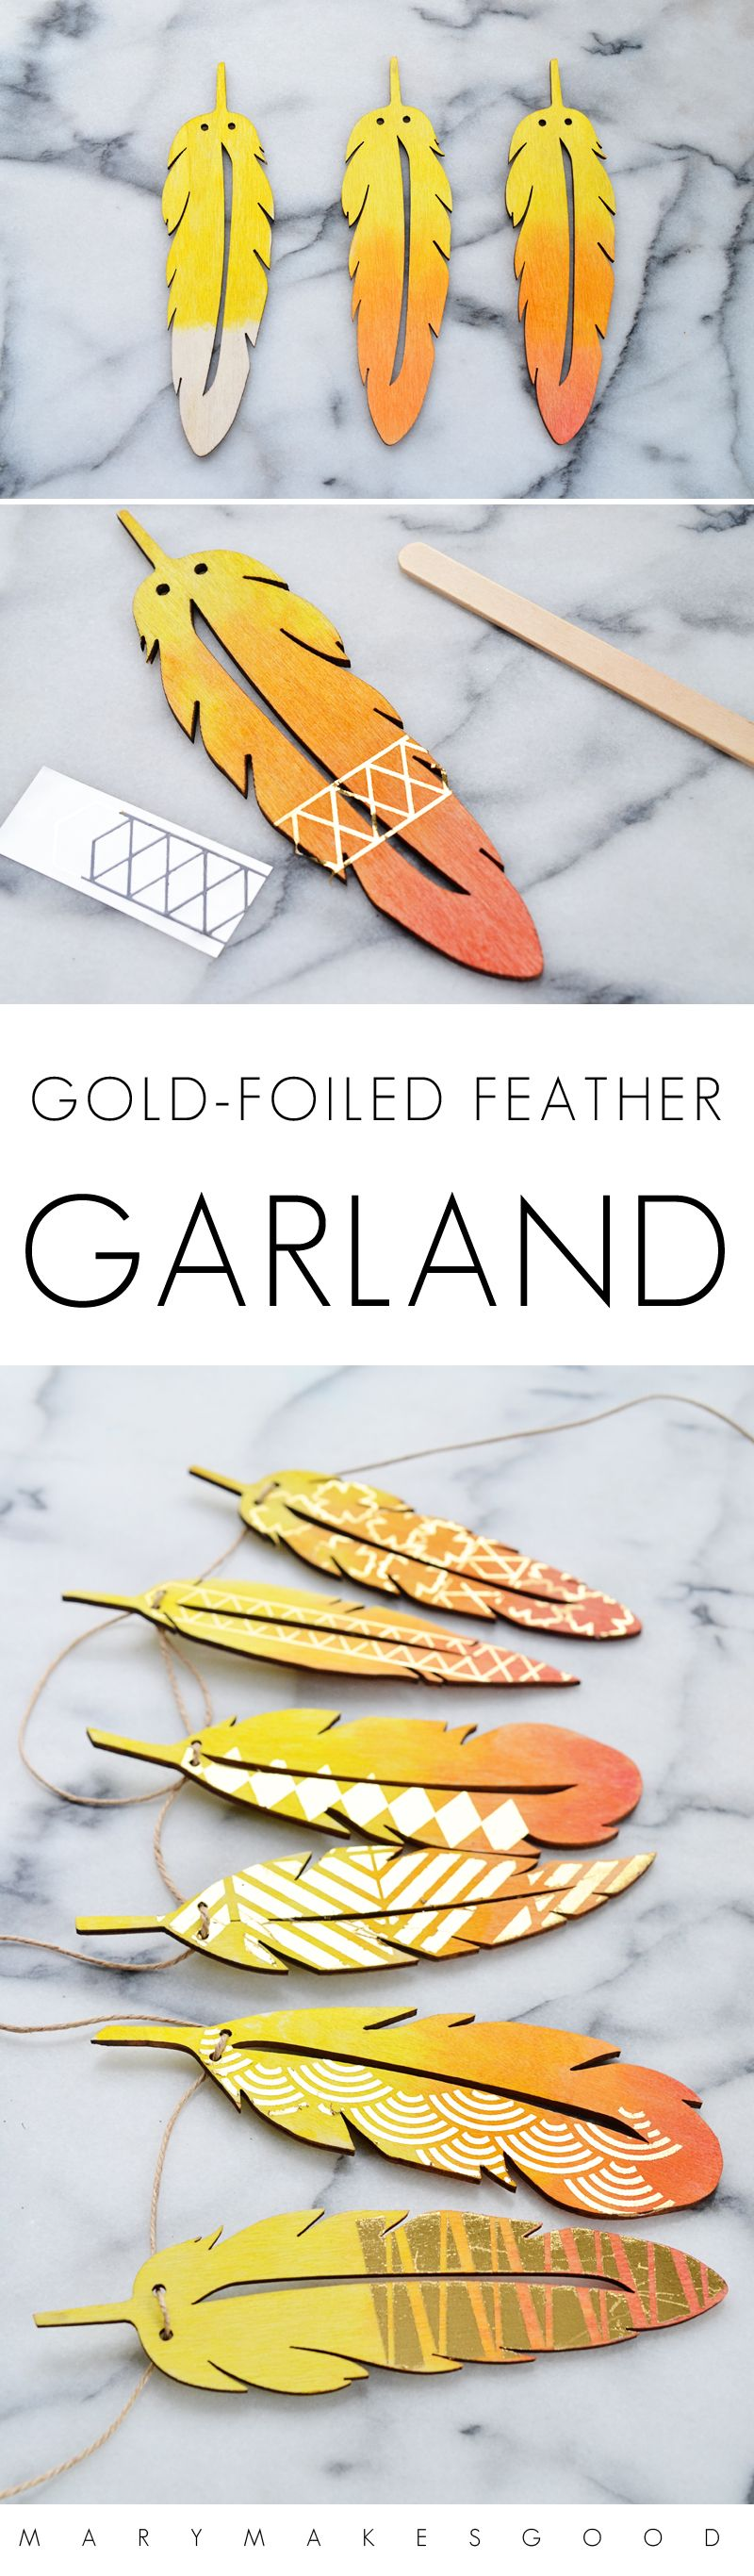 How To Make Gold Foiled Feather Garlands